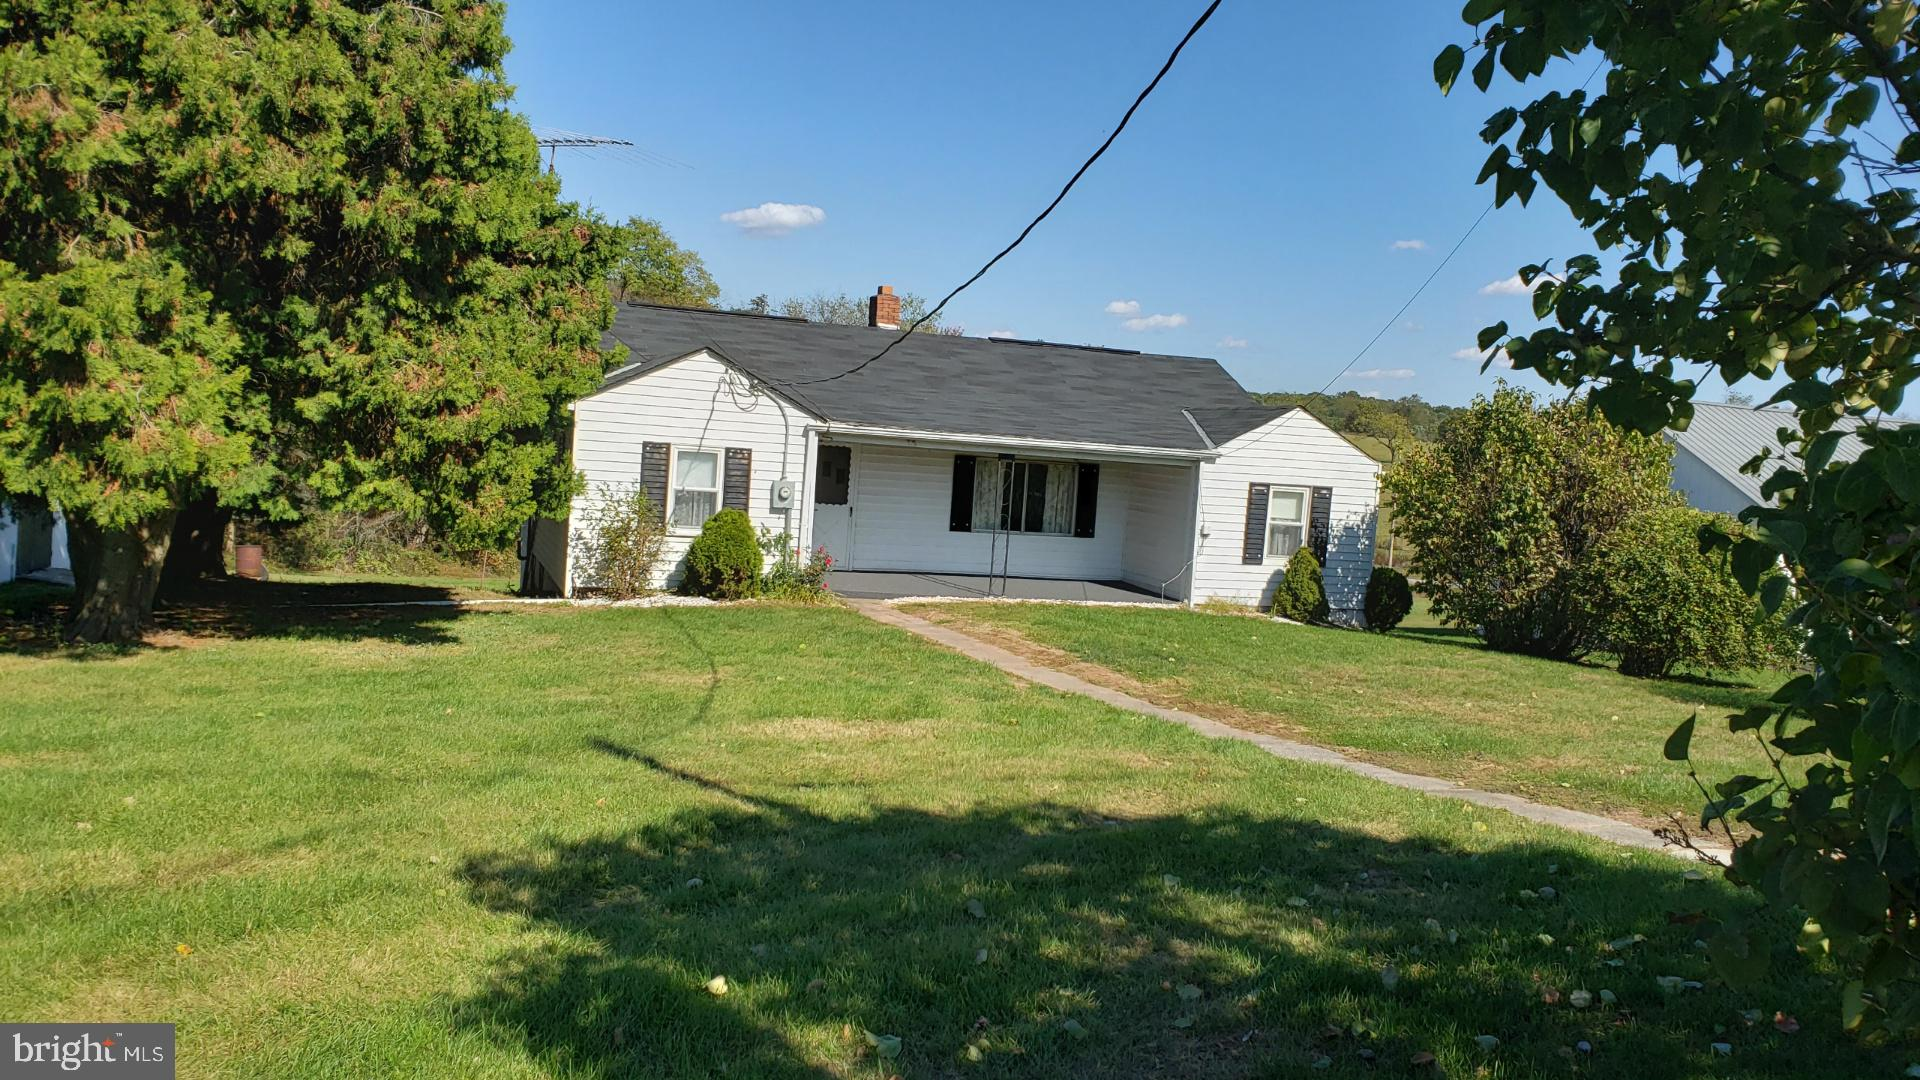 631 WITTER ROAD, WATERFALL, PA 16689